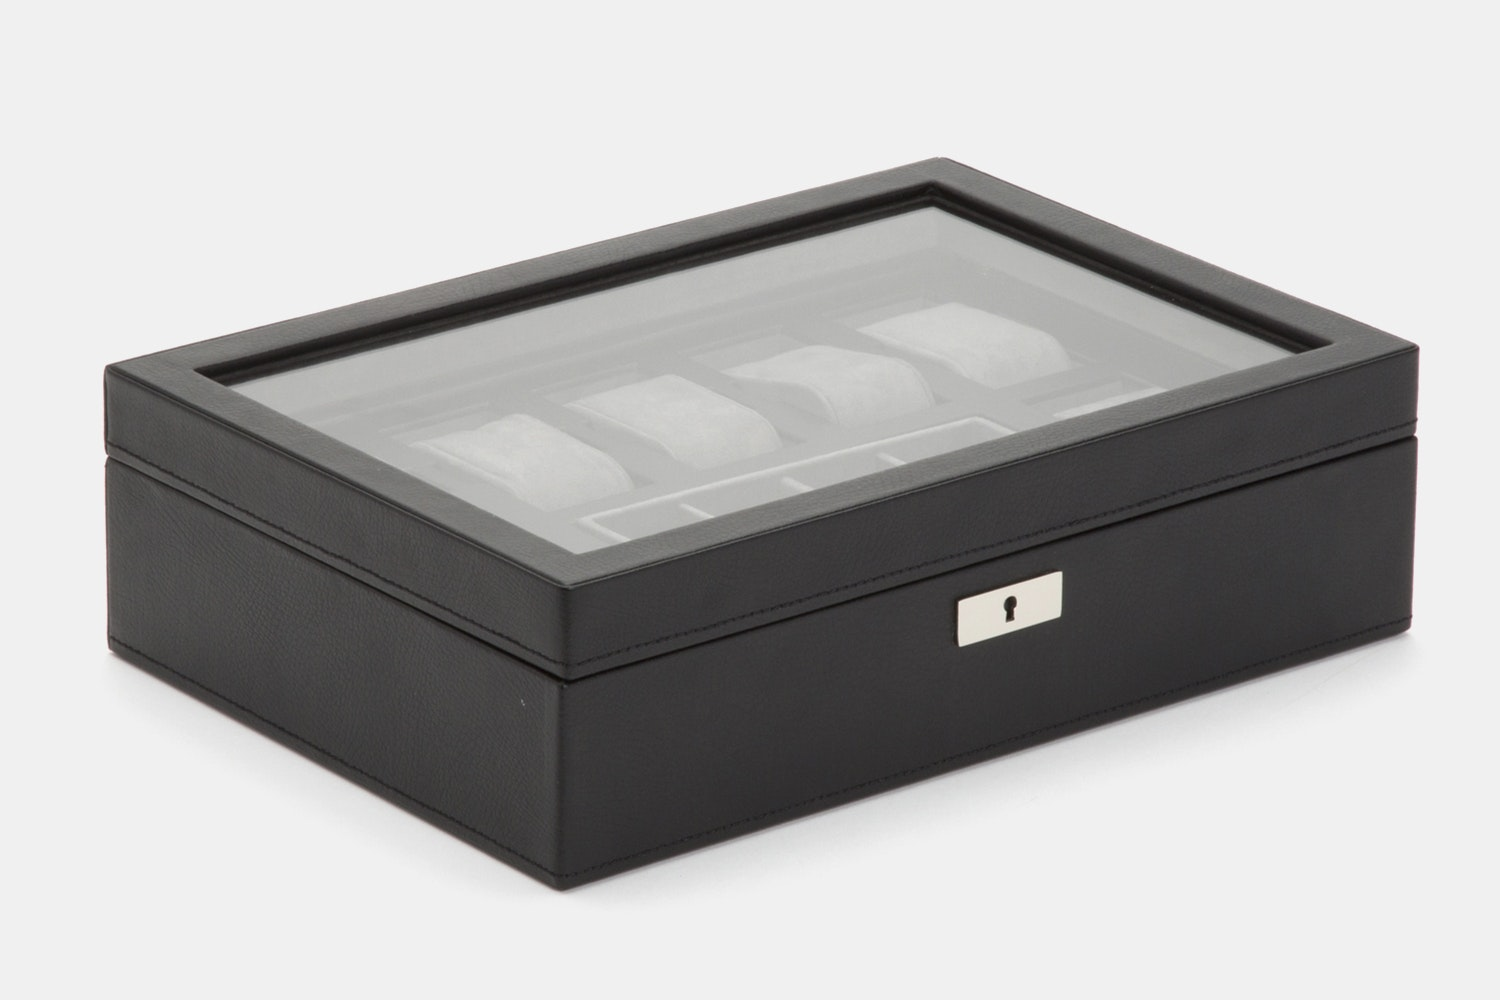 Howard Watch Box - Black (+$30)